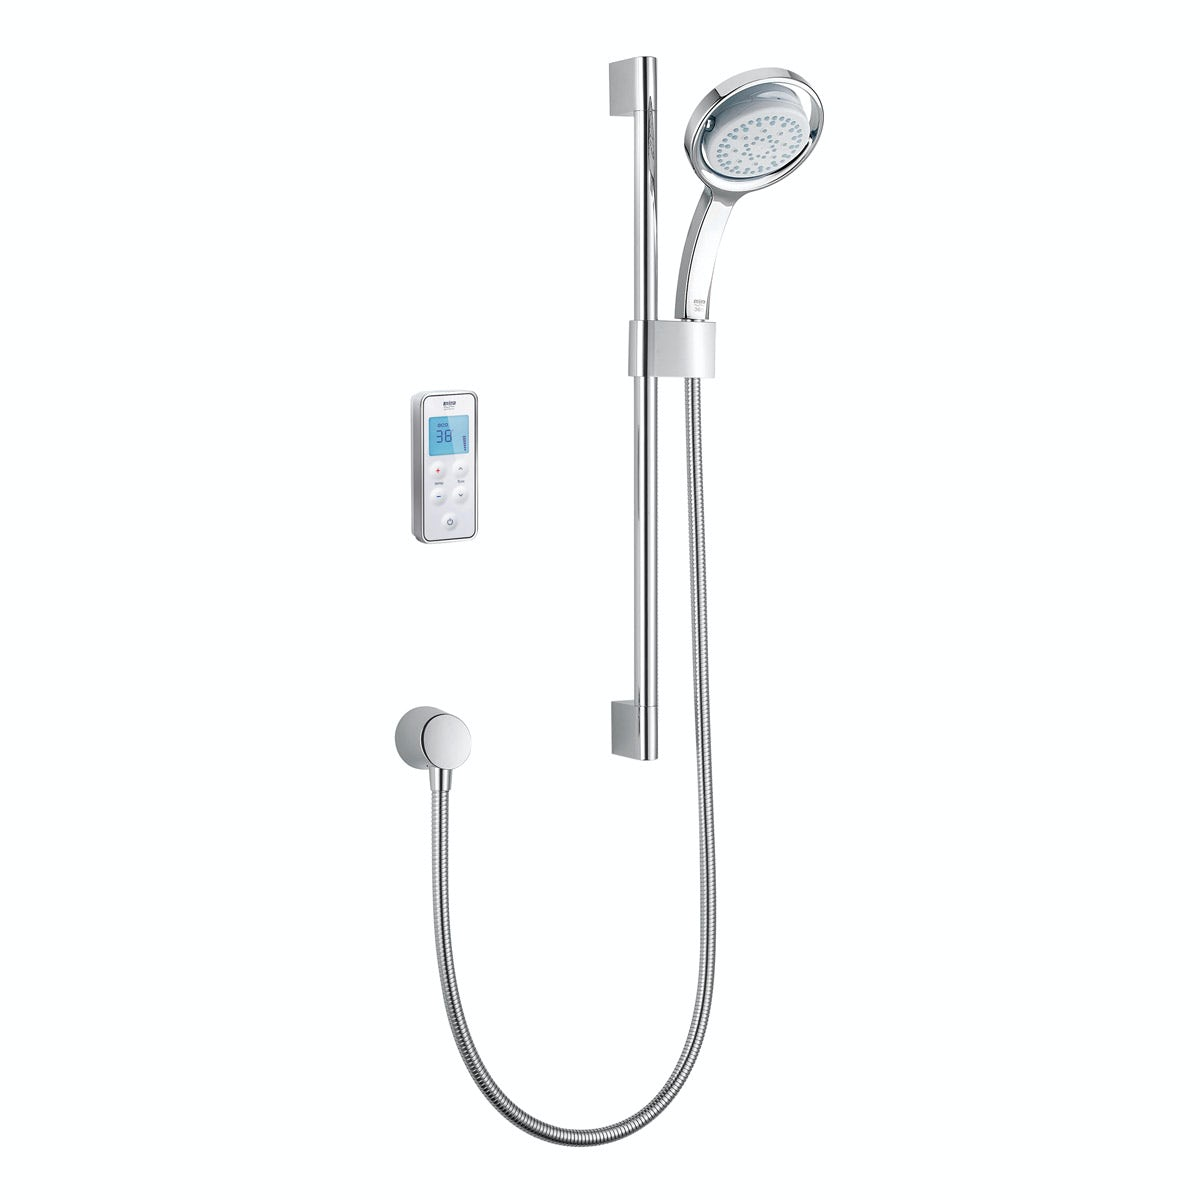 Mira Vision rear fed digital shower pumped